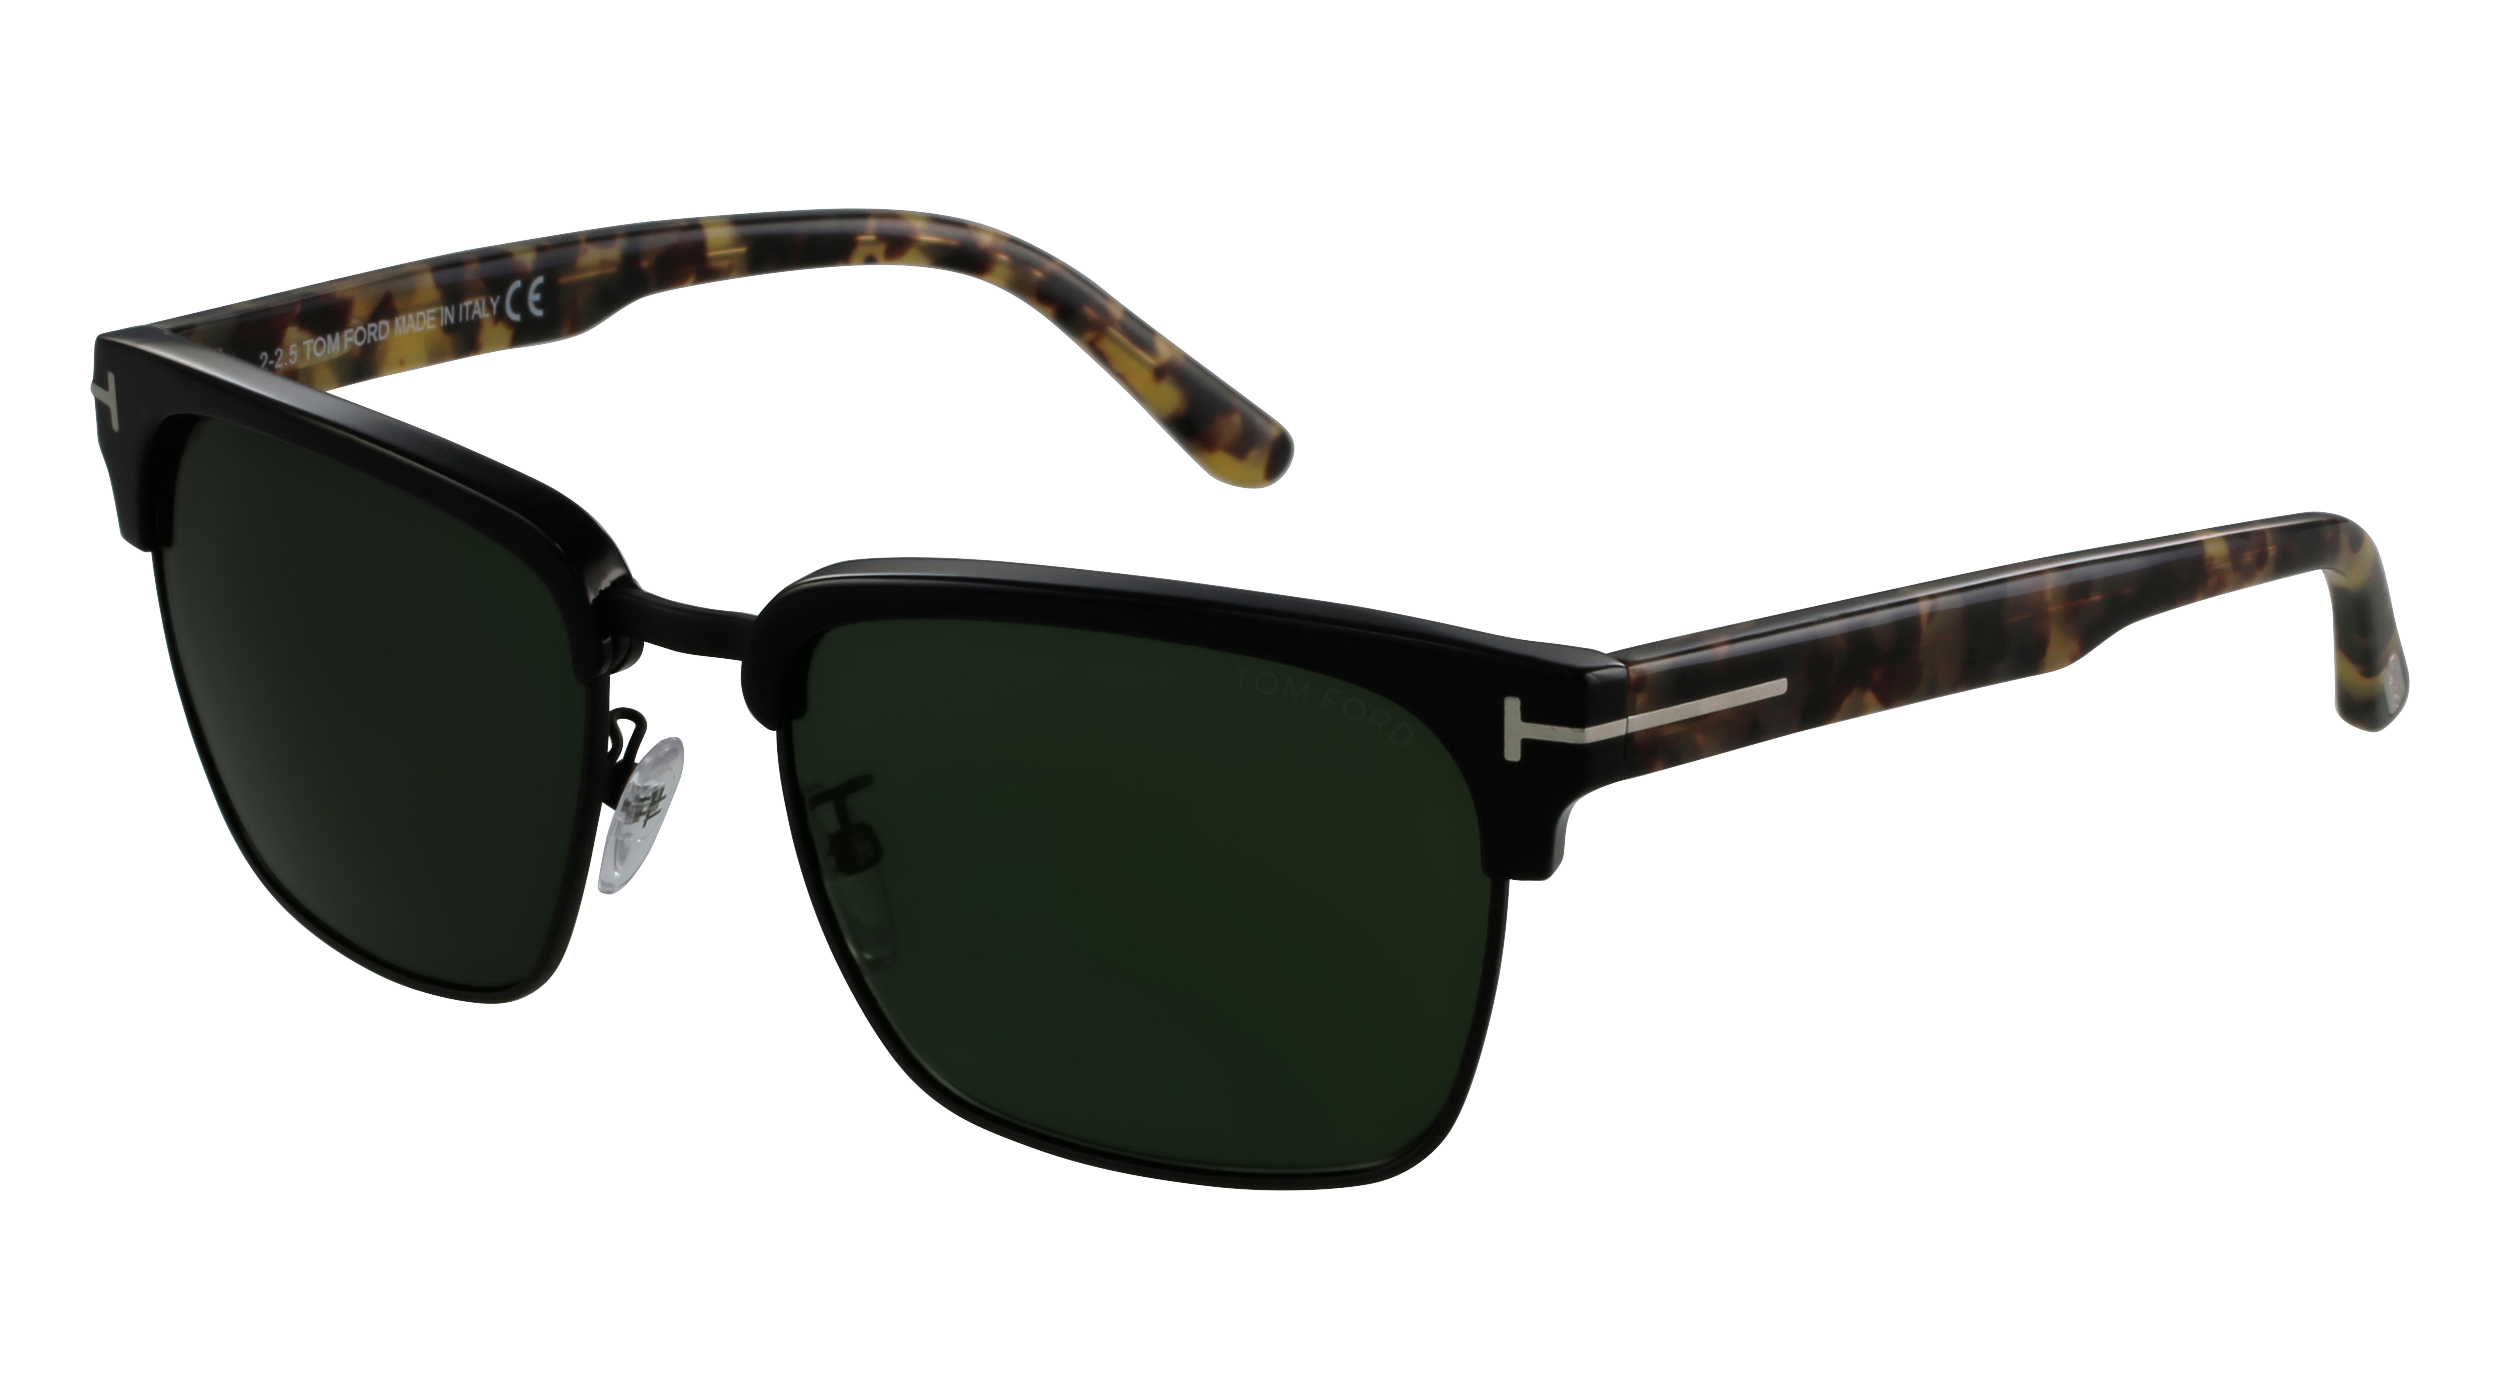 Tom Ford FT0367-S-02B-0-0-0